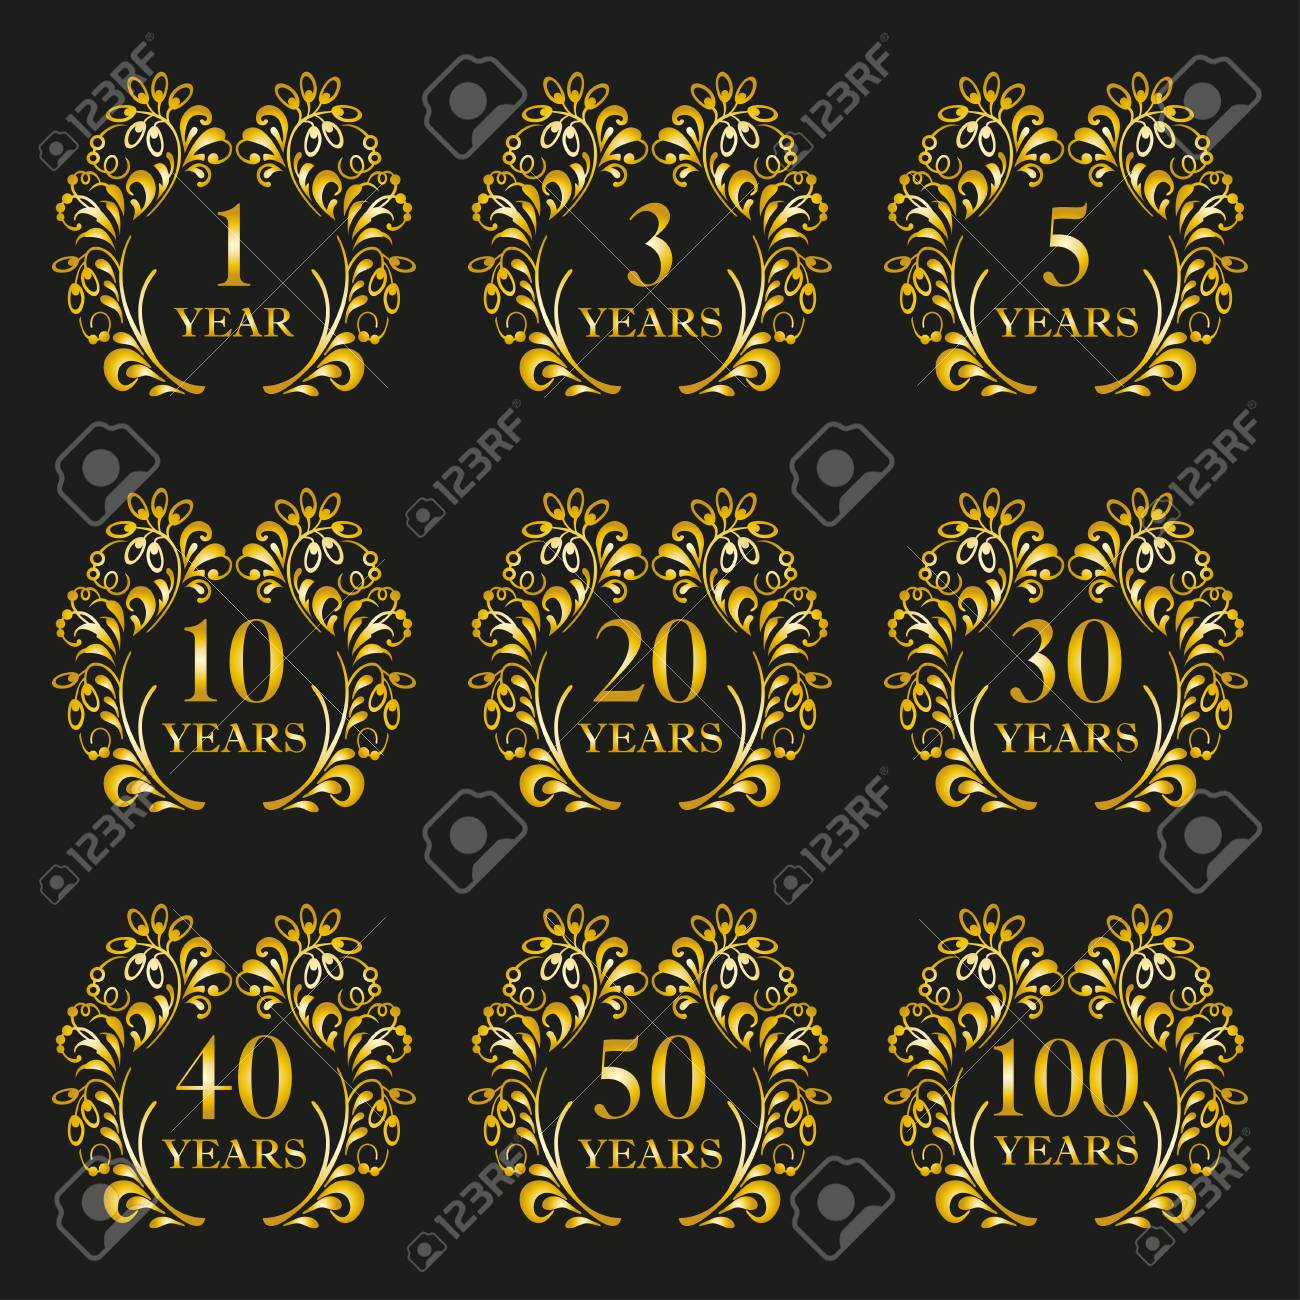 anniversary icon set anniversary symbols in ornate frame with